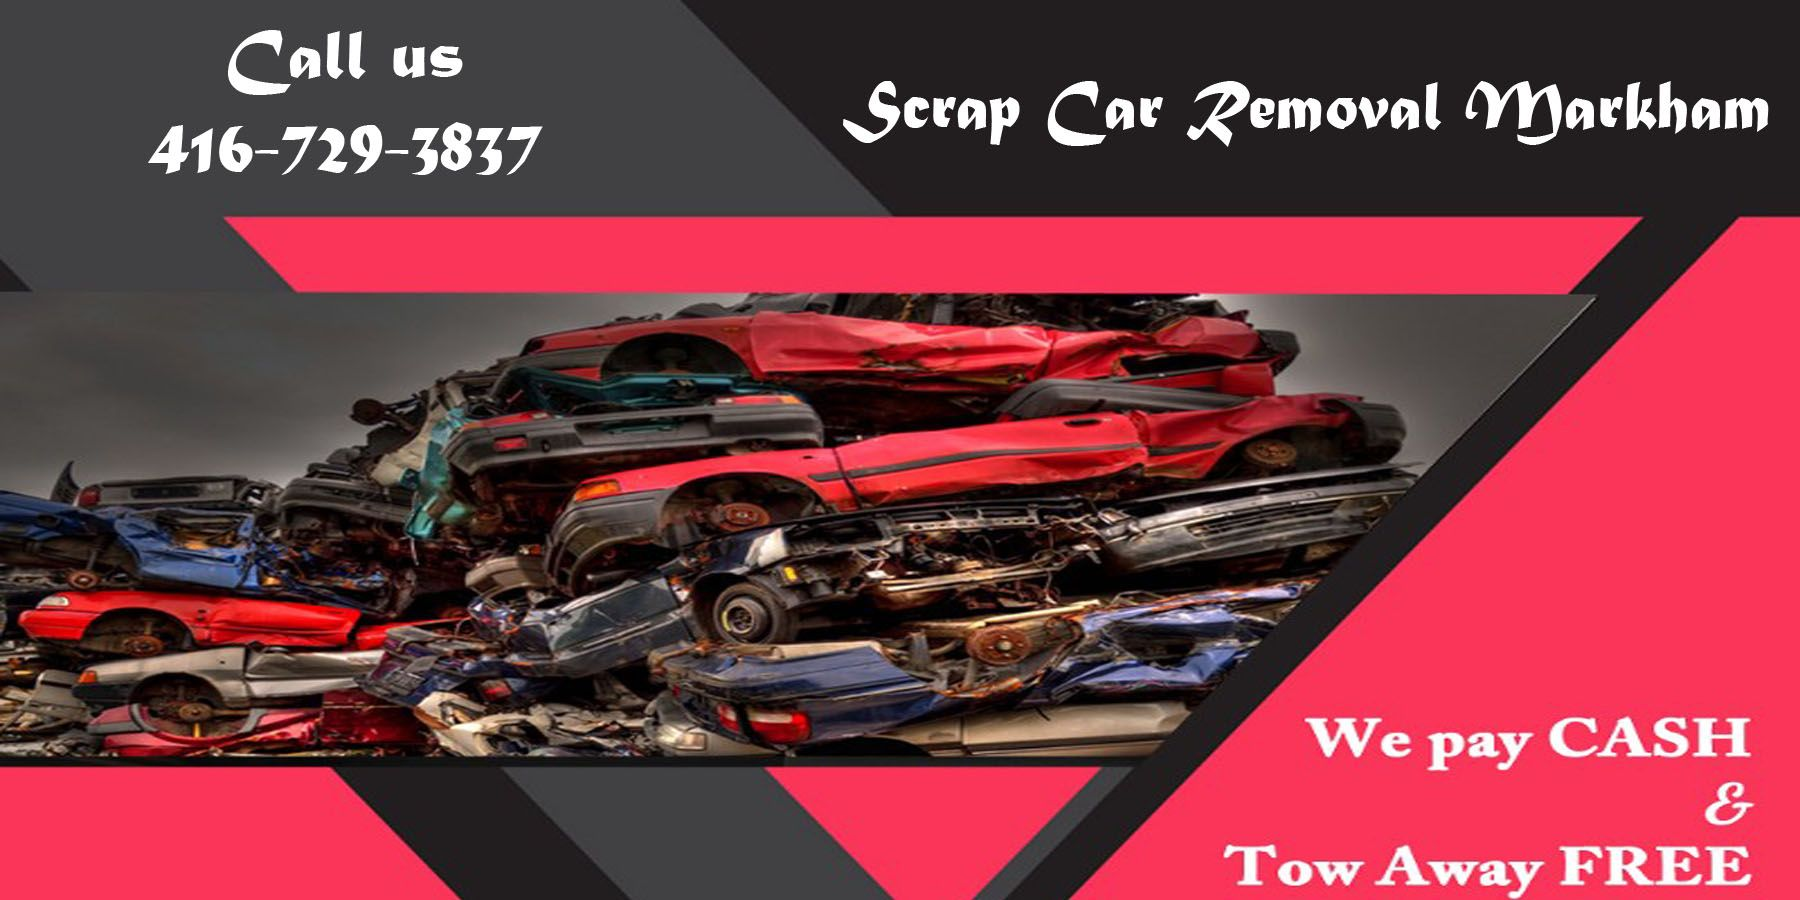 We offer mobile Scrap Car Removal Toronto services in the